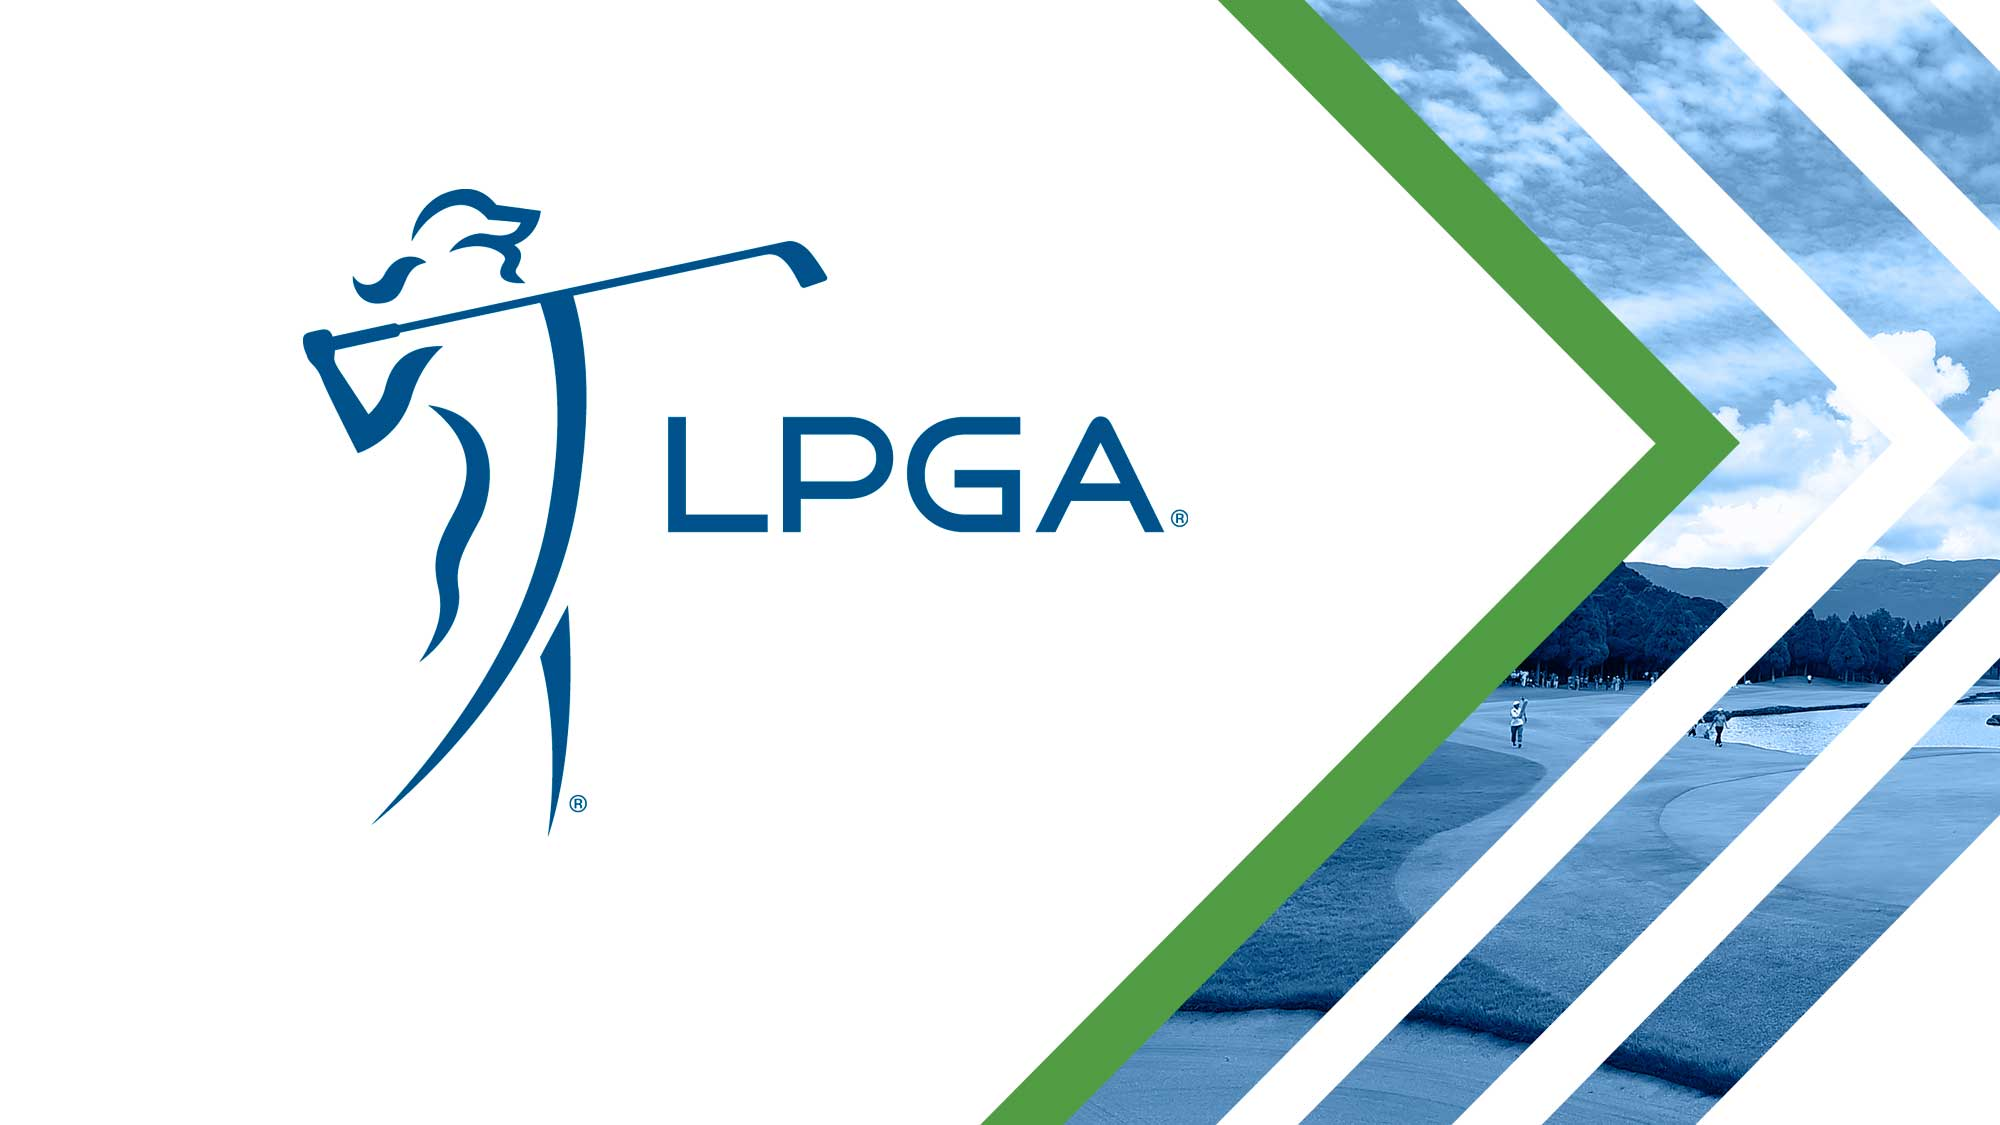 PGA TOUR Superstore instructors to become LPGA Teaching HER certified